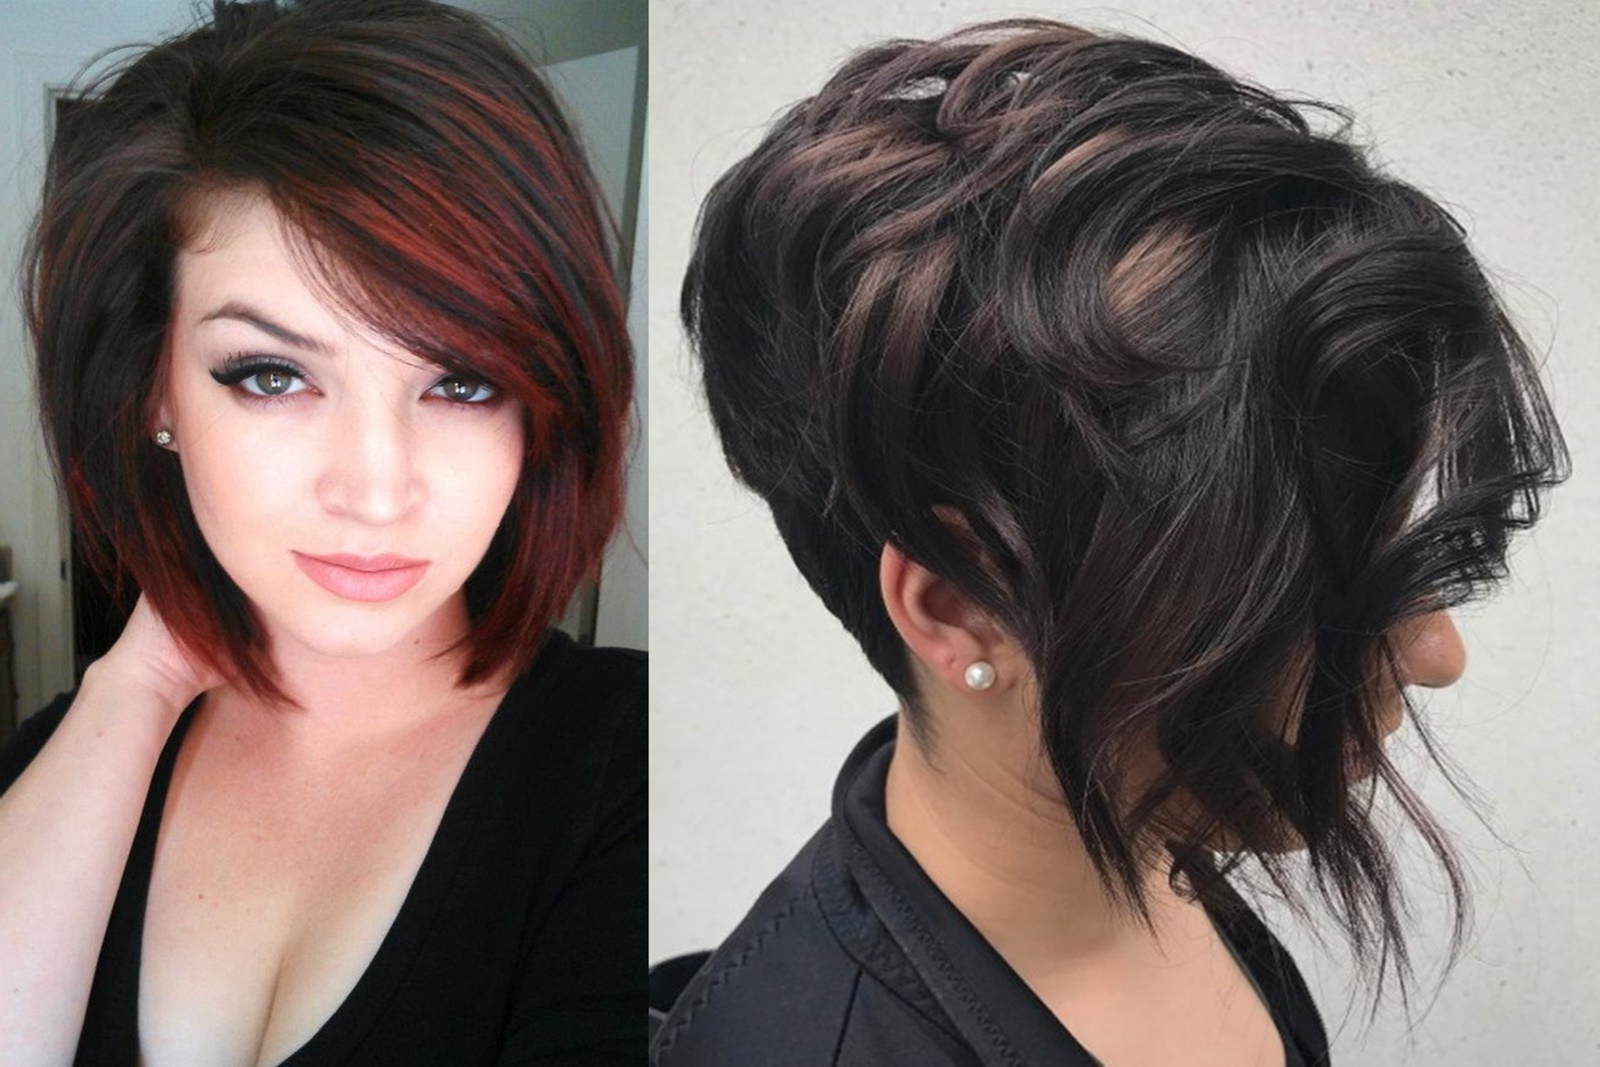 Trendy Short Haircuts For Fine Hair | Hairstyles & Hair Color For With Trendy Short Haircuts For Fine Hair (View 4 of 25)